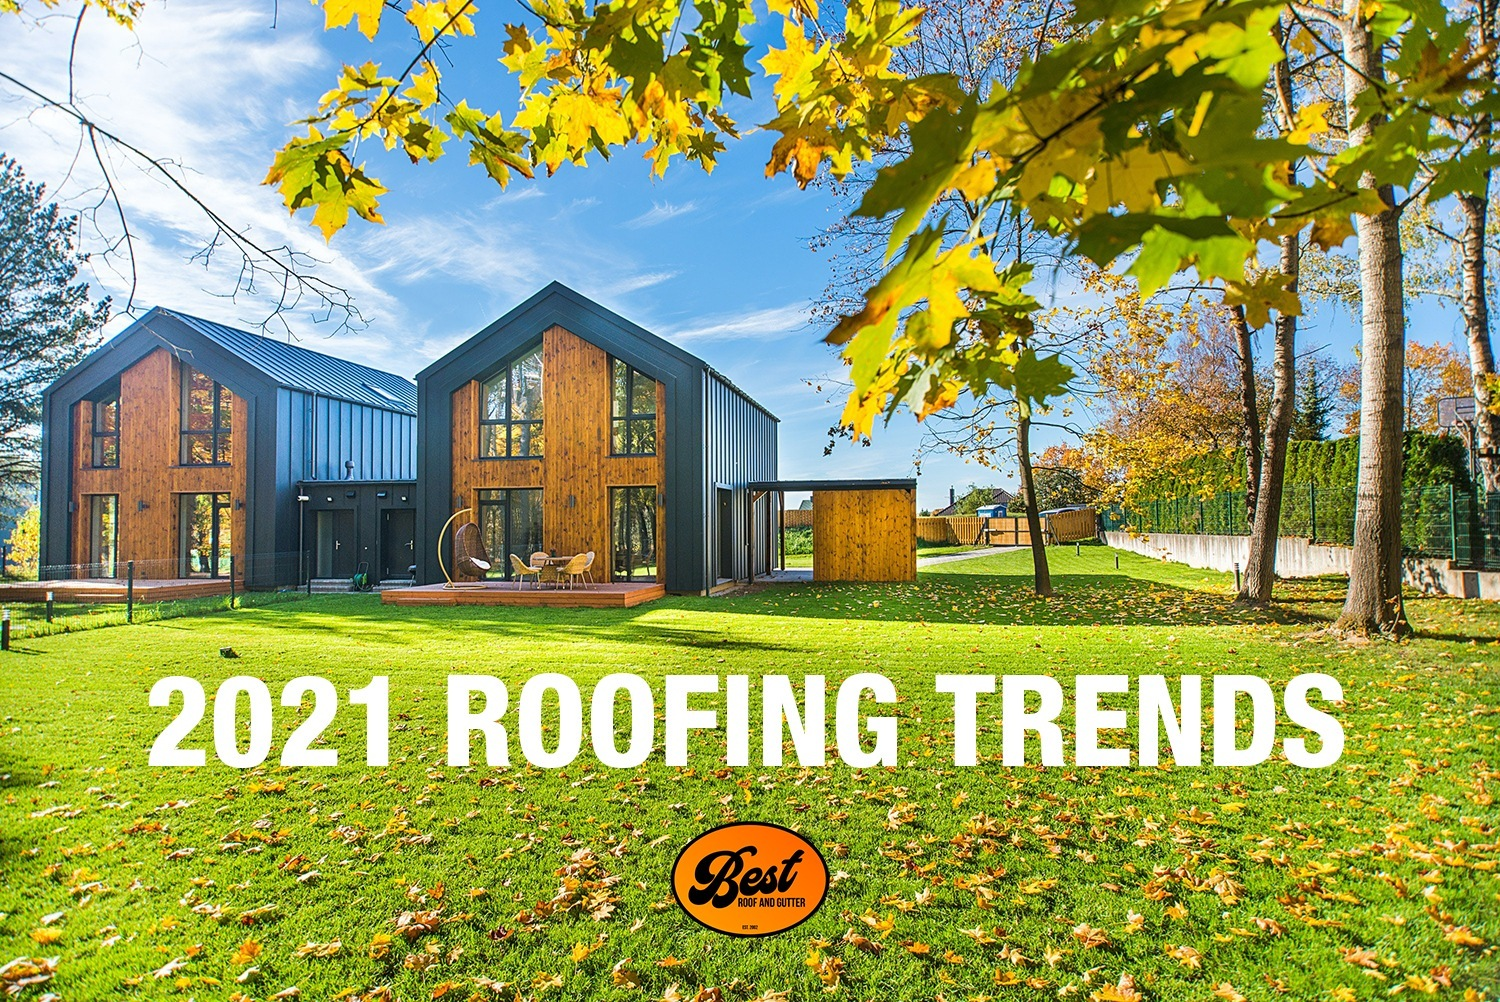 2021 Roofing Trends